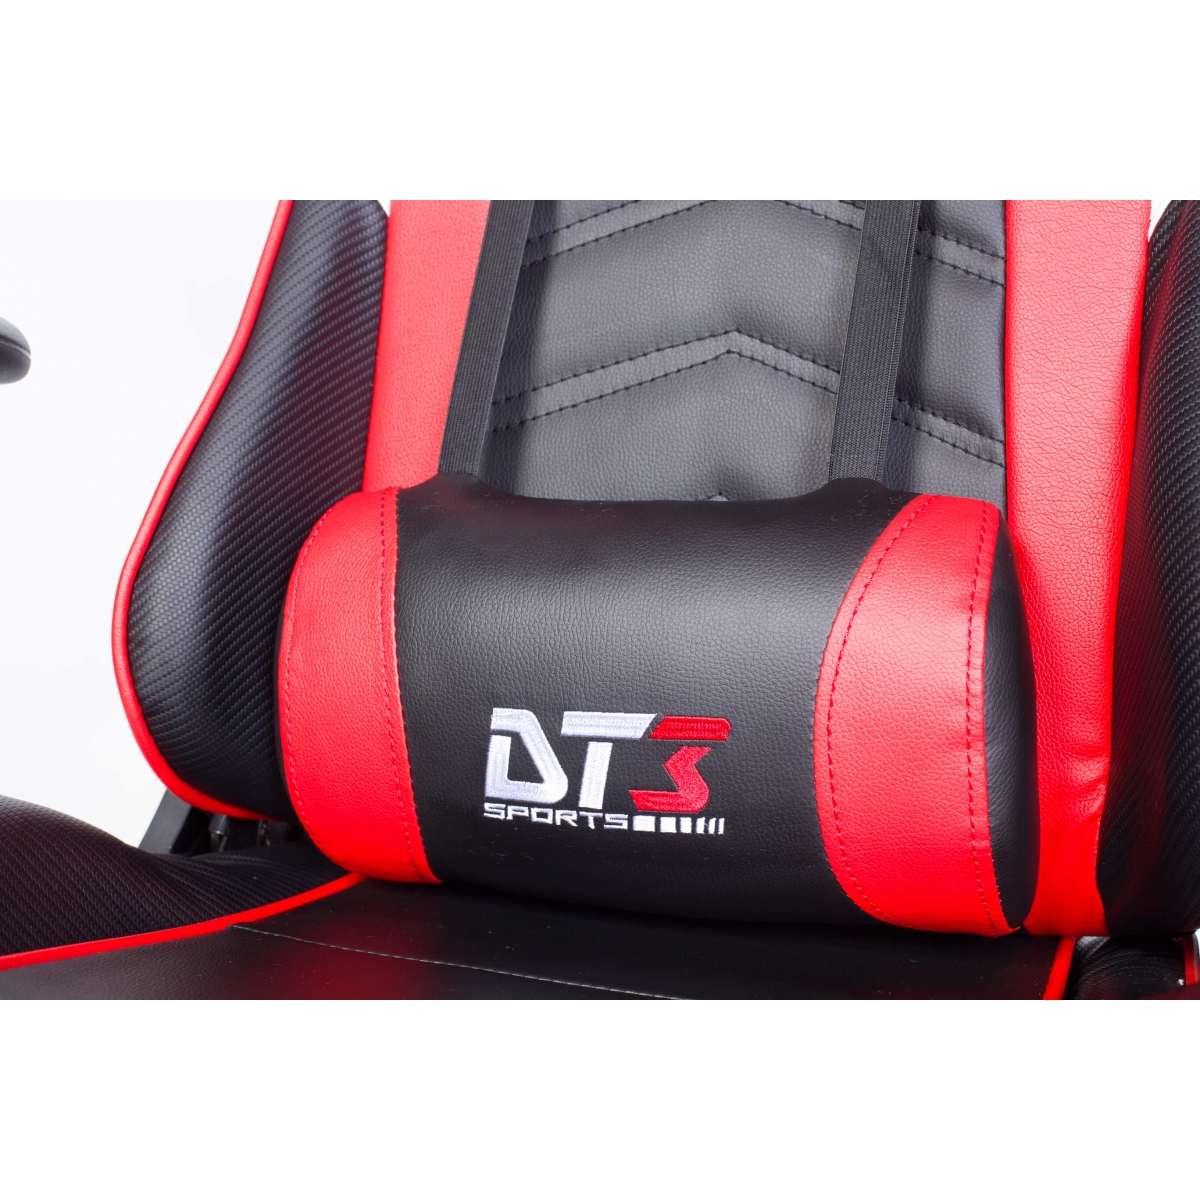 Cadeira Gamer DT3Sports Elise, Black-Red